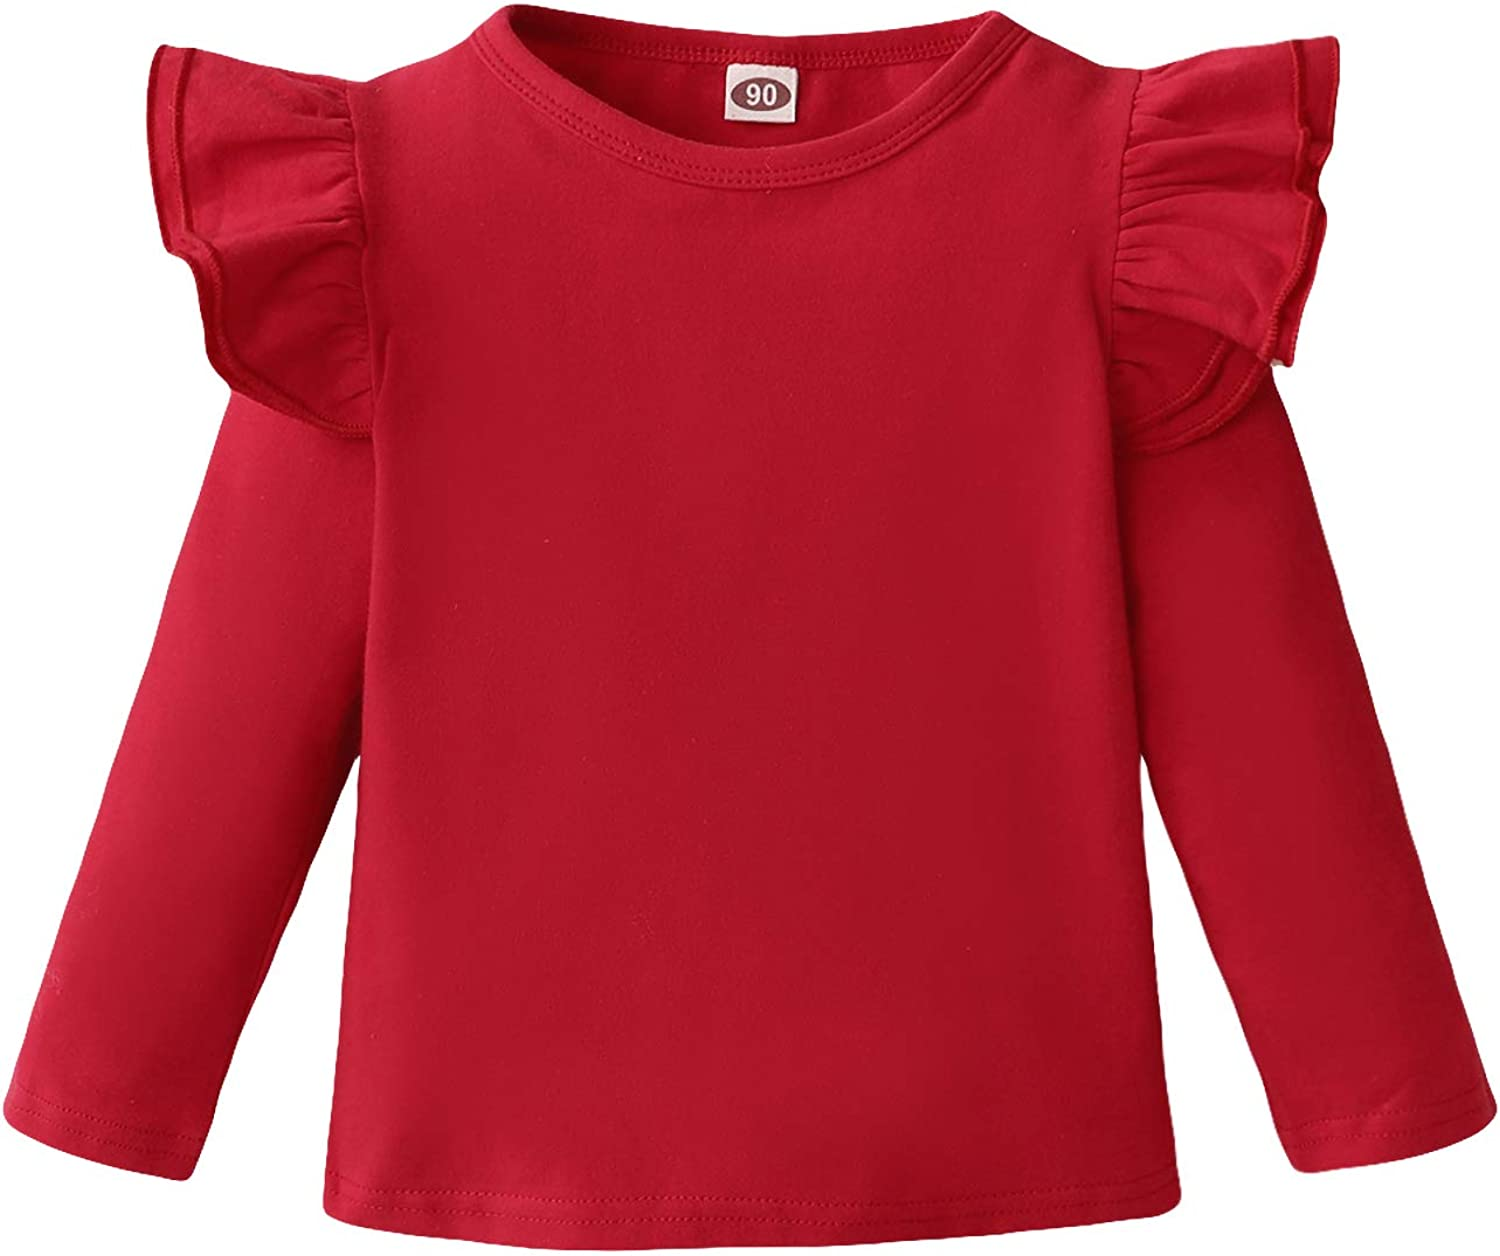 LYSMuch Toddler Baby Girls Ruffle Top Kids Cotton Outfit Solid Color Clothes